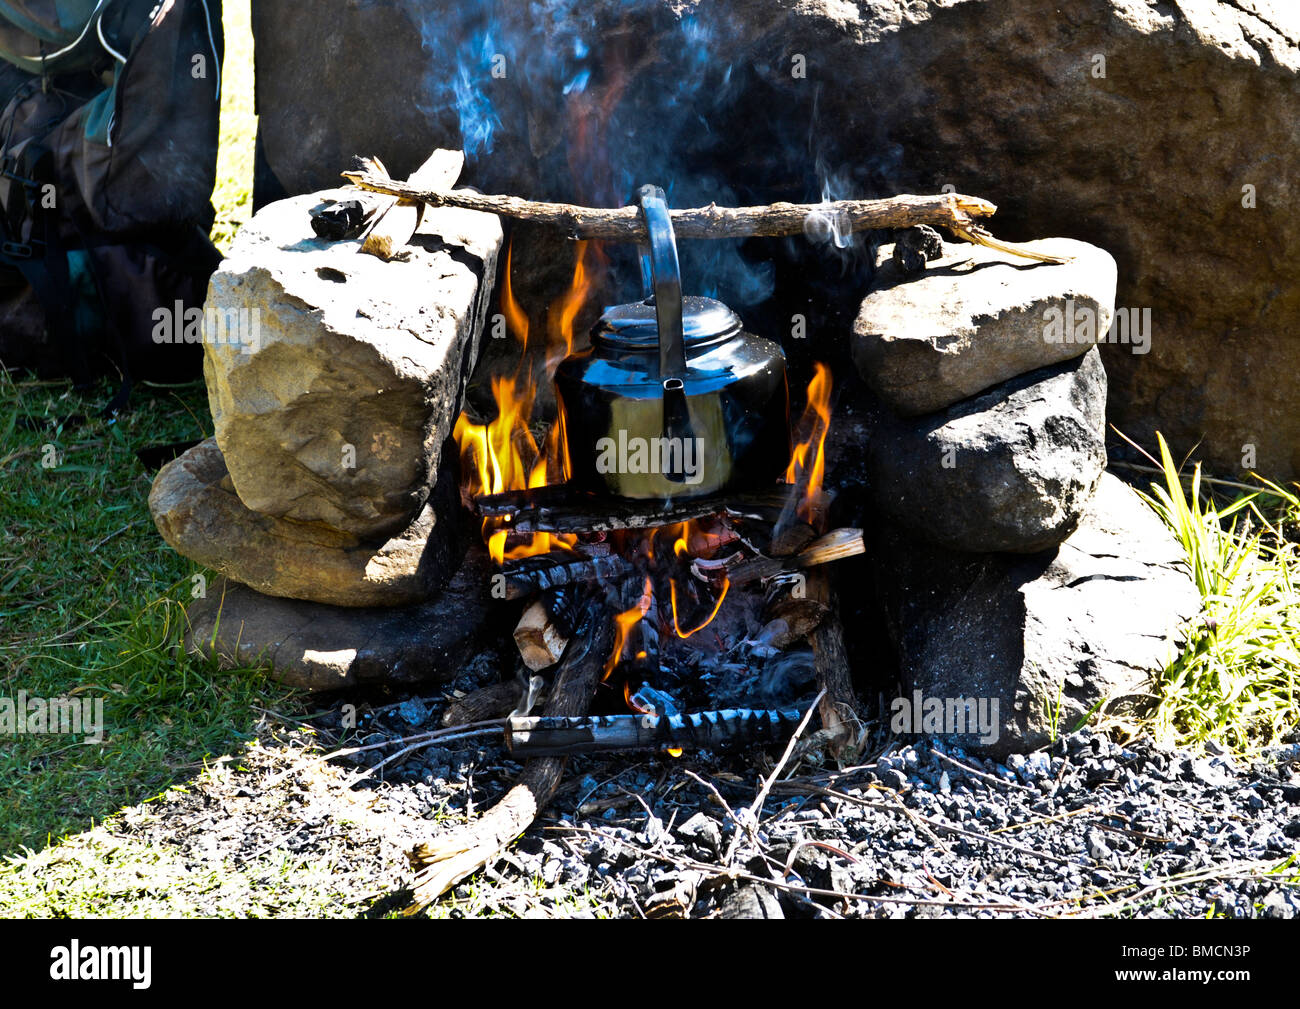 Old established conventional method of arranged stones making into stove structure with wood burning fire for cooking - Stock Image